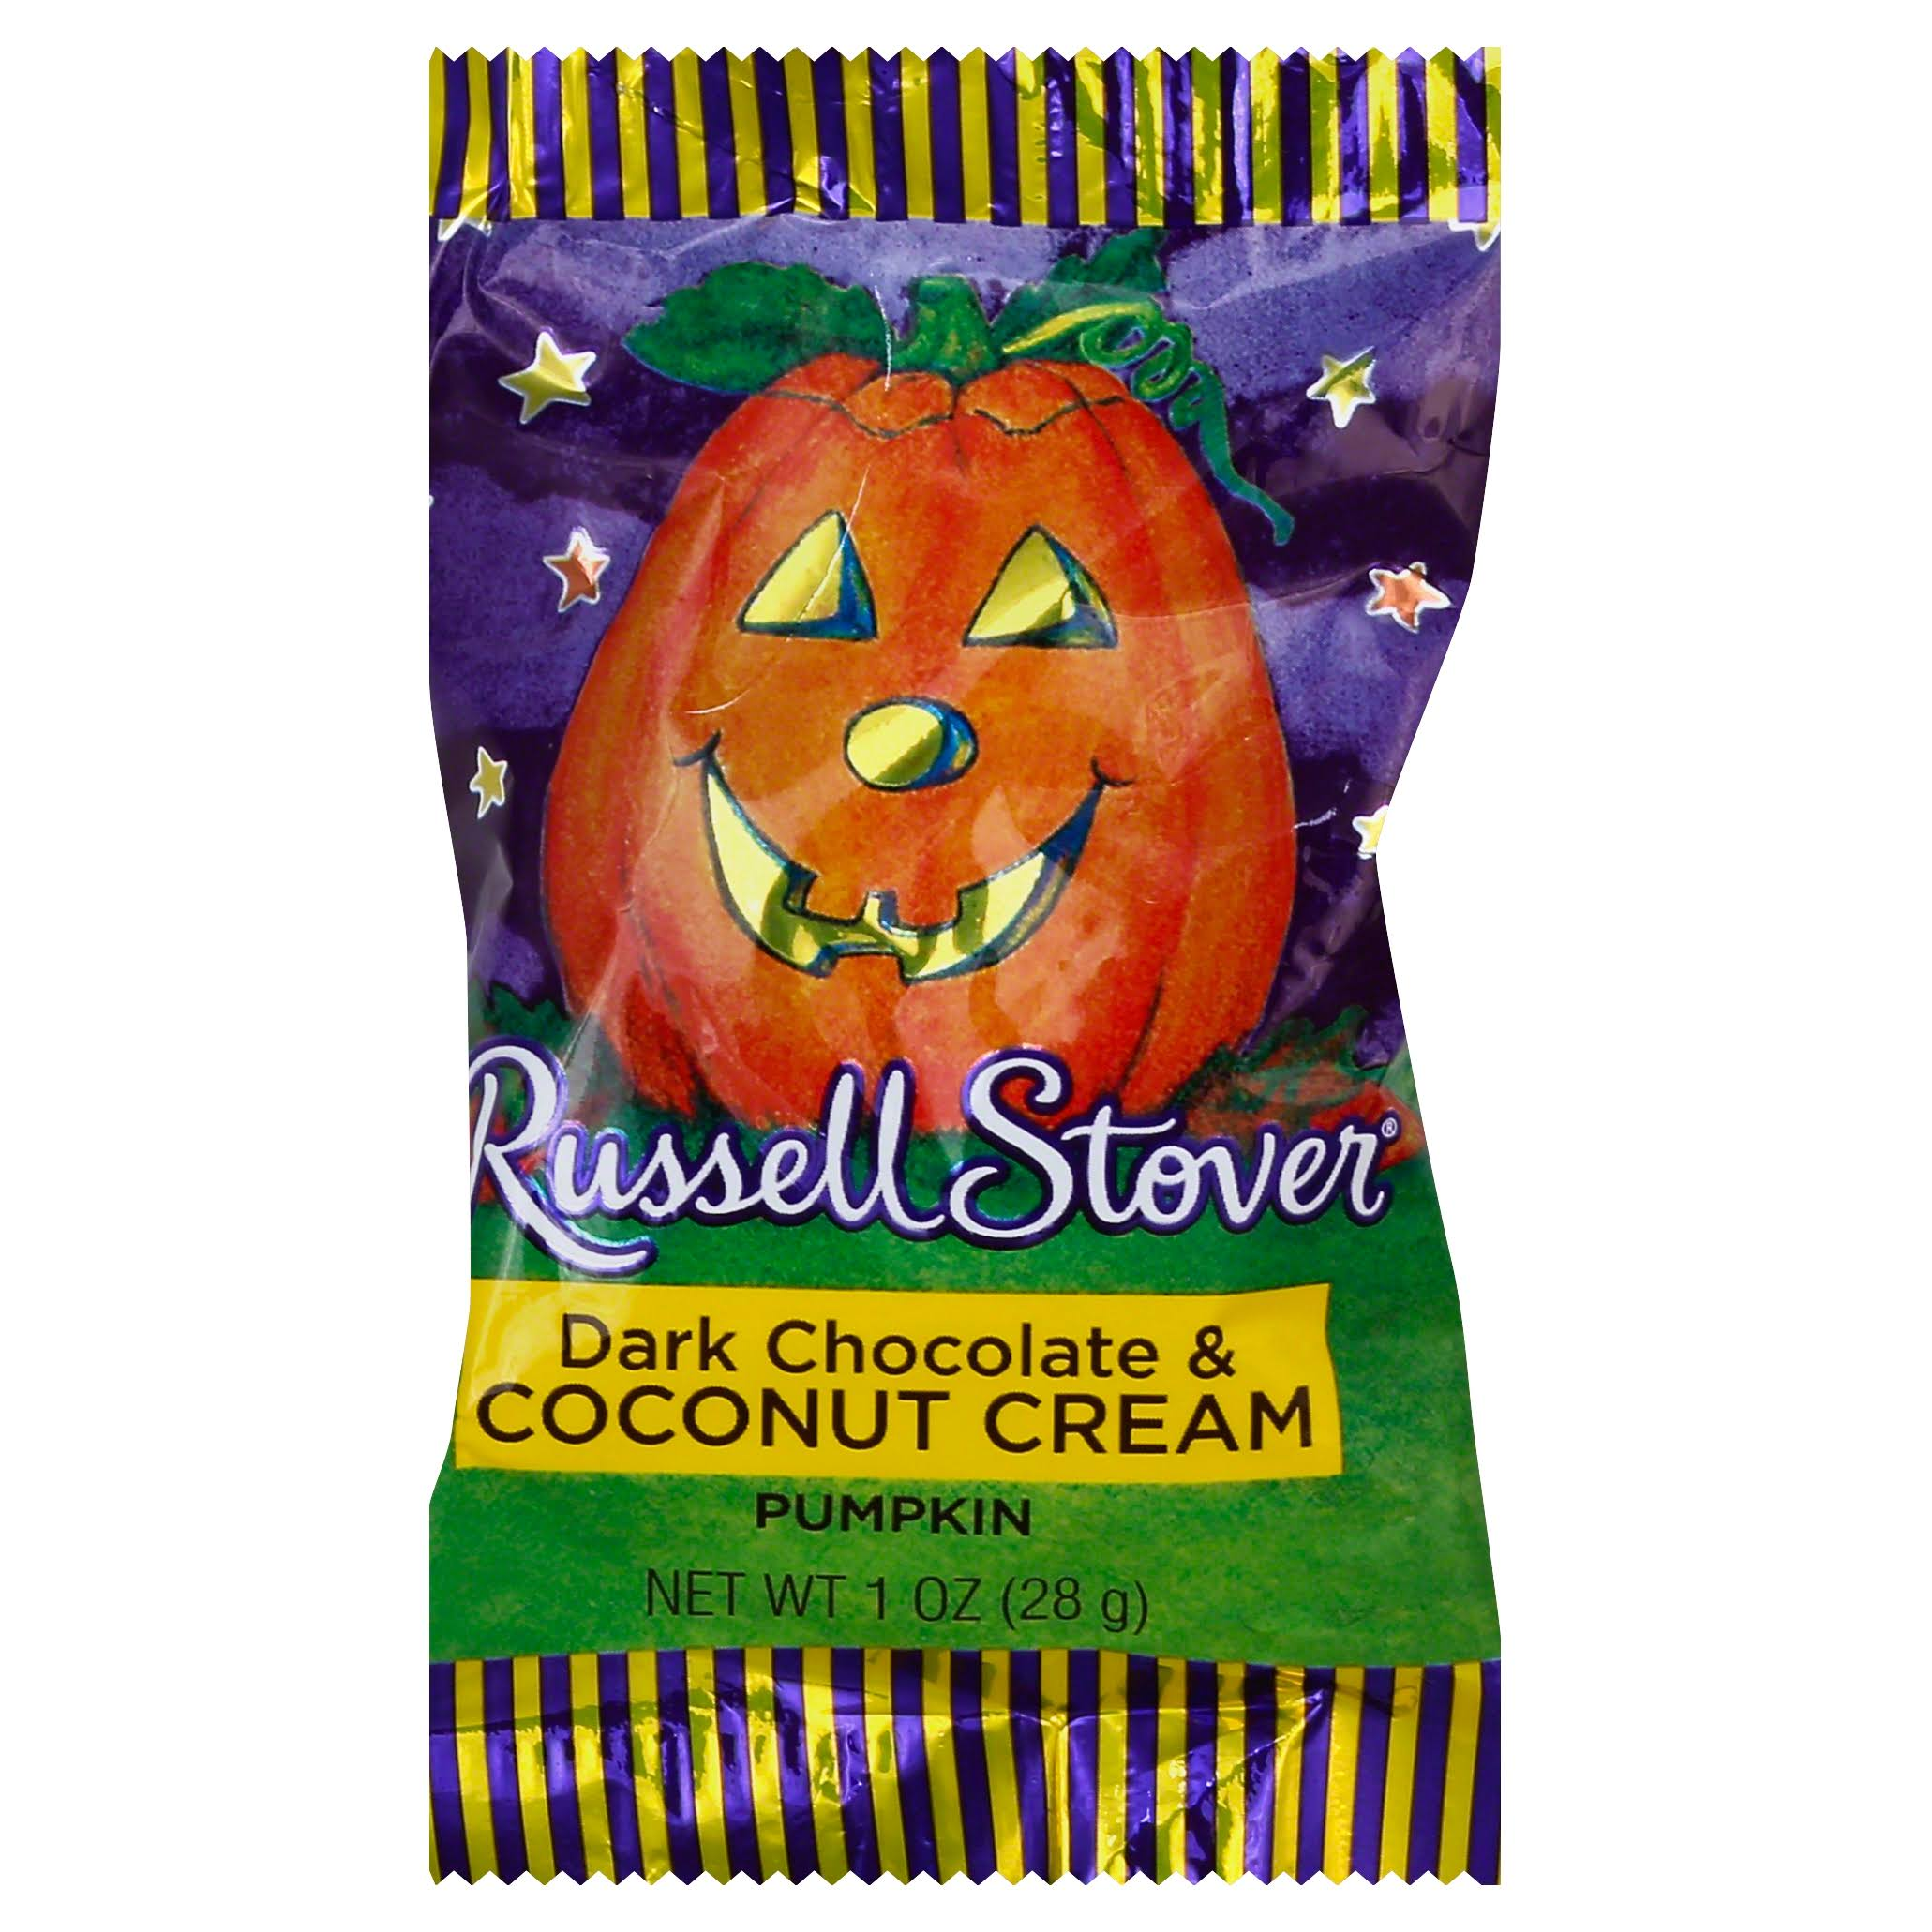 Russell Stover Dark Chocolate & Coconut Cream Pumpkin